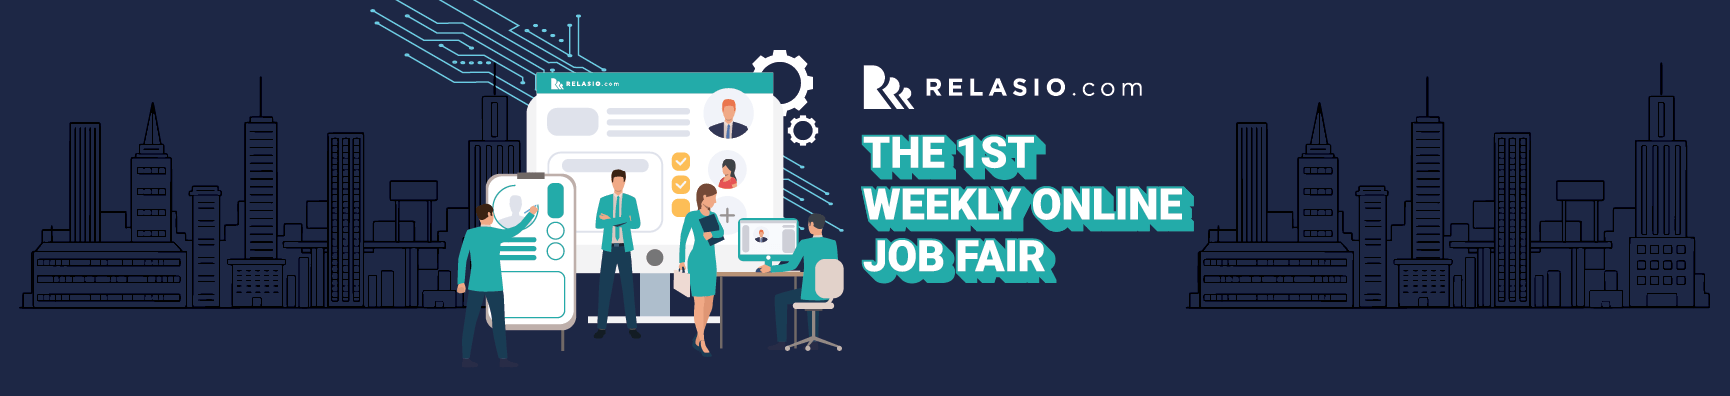 the 1st weekly online job fair